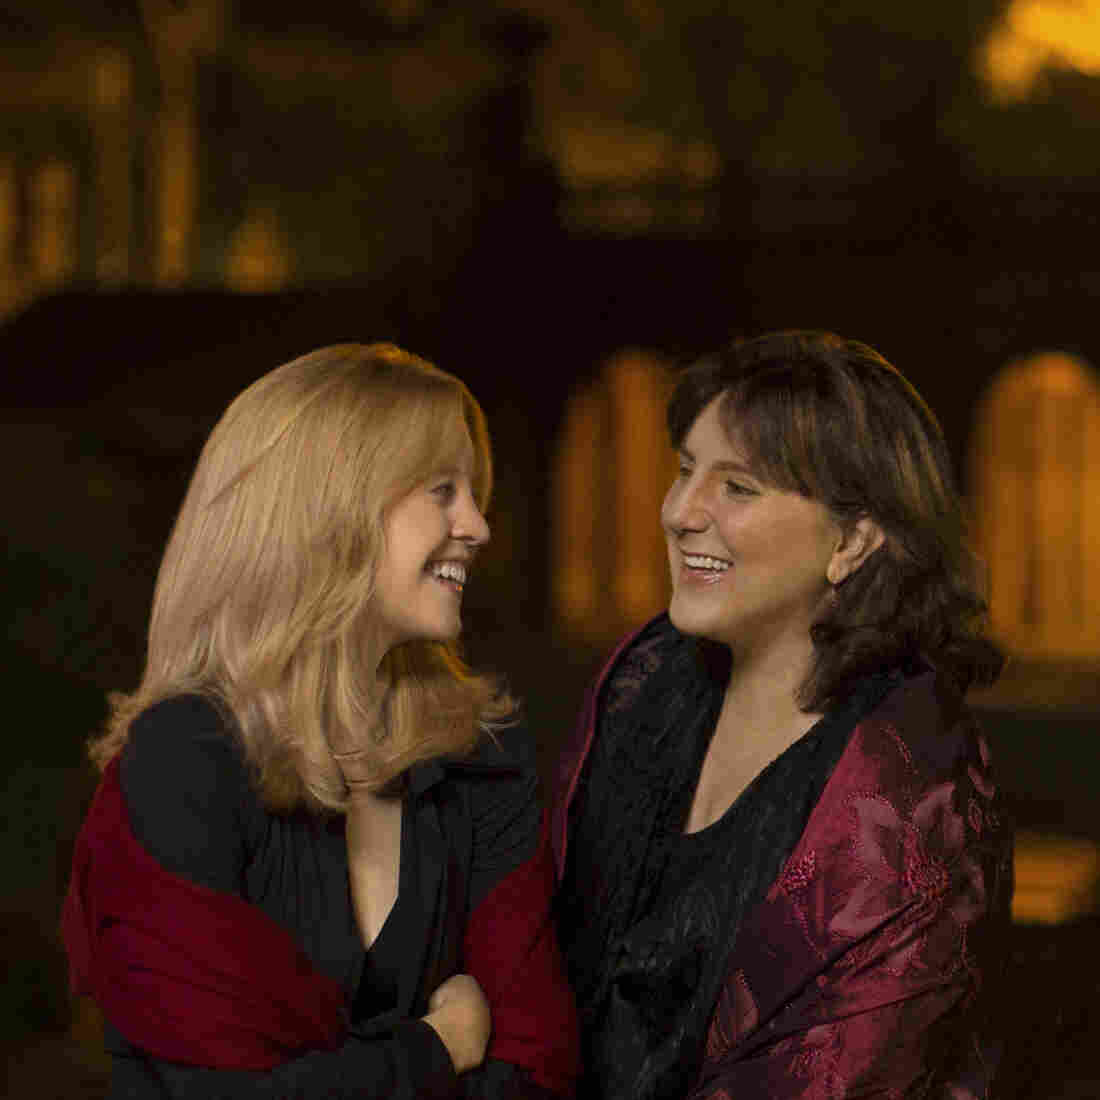 Jazz composer Maria Schneider (left) and soprano Dawn Upshaw collaborated on the new album Winter Morning Walks.